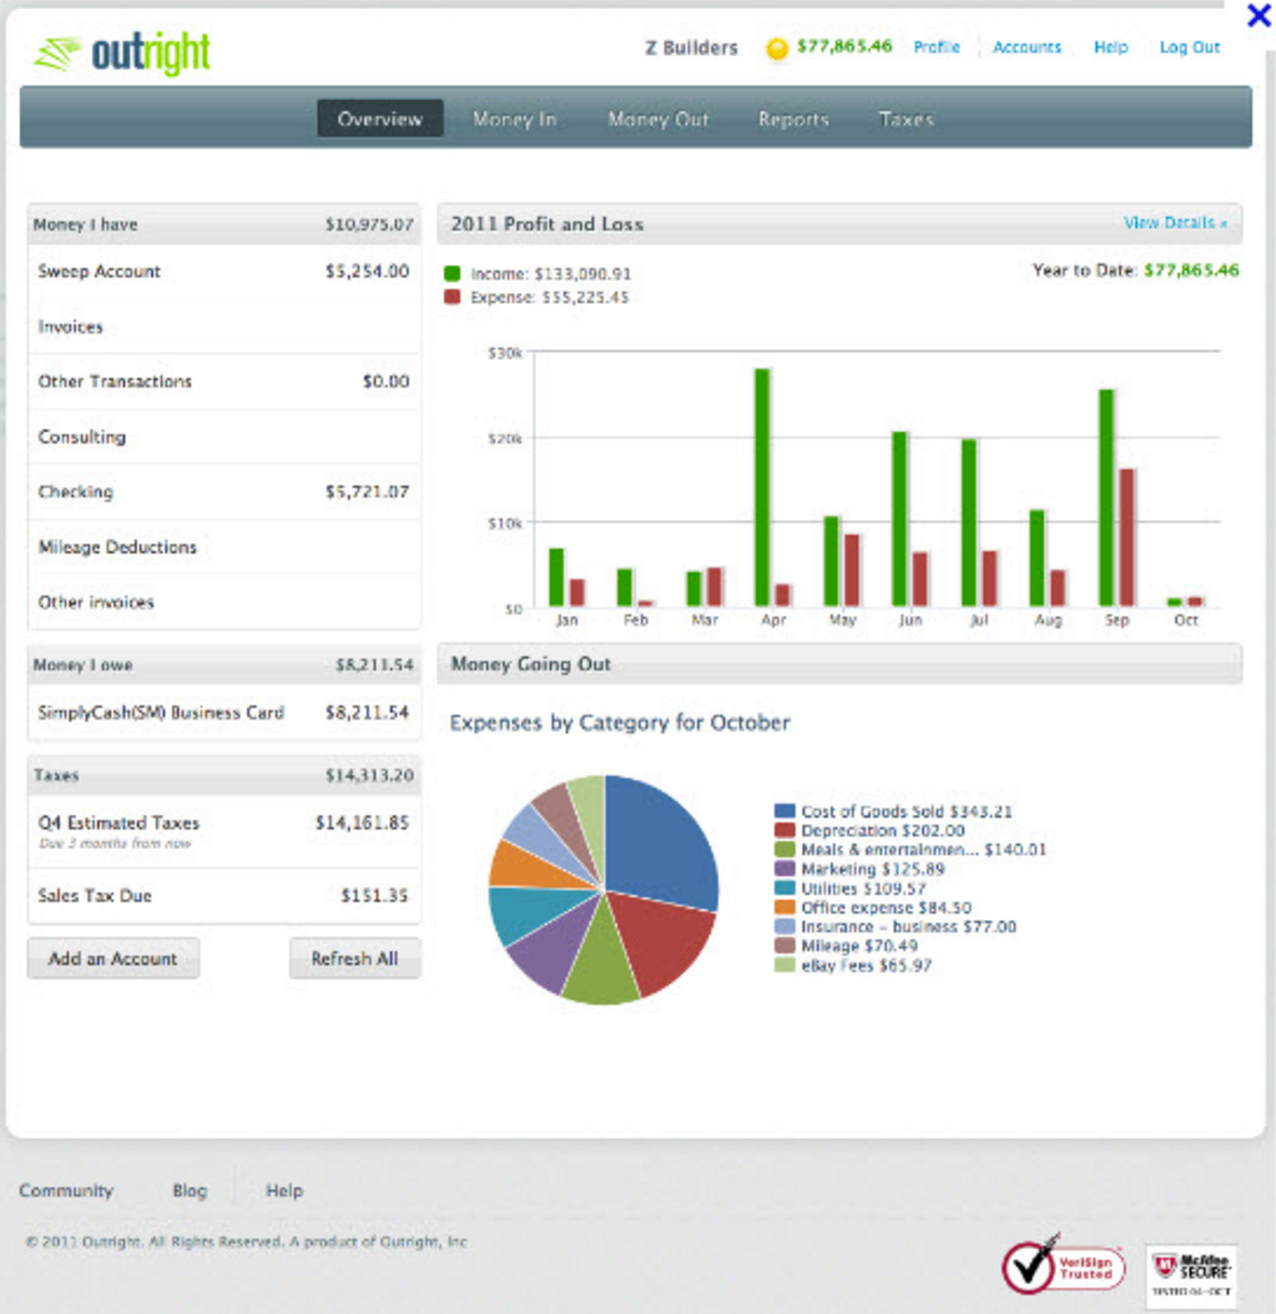 GoDaddy Online Bookkeeping Software - Overview